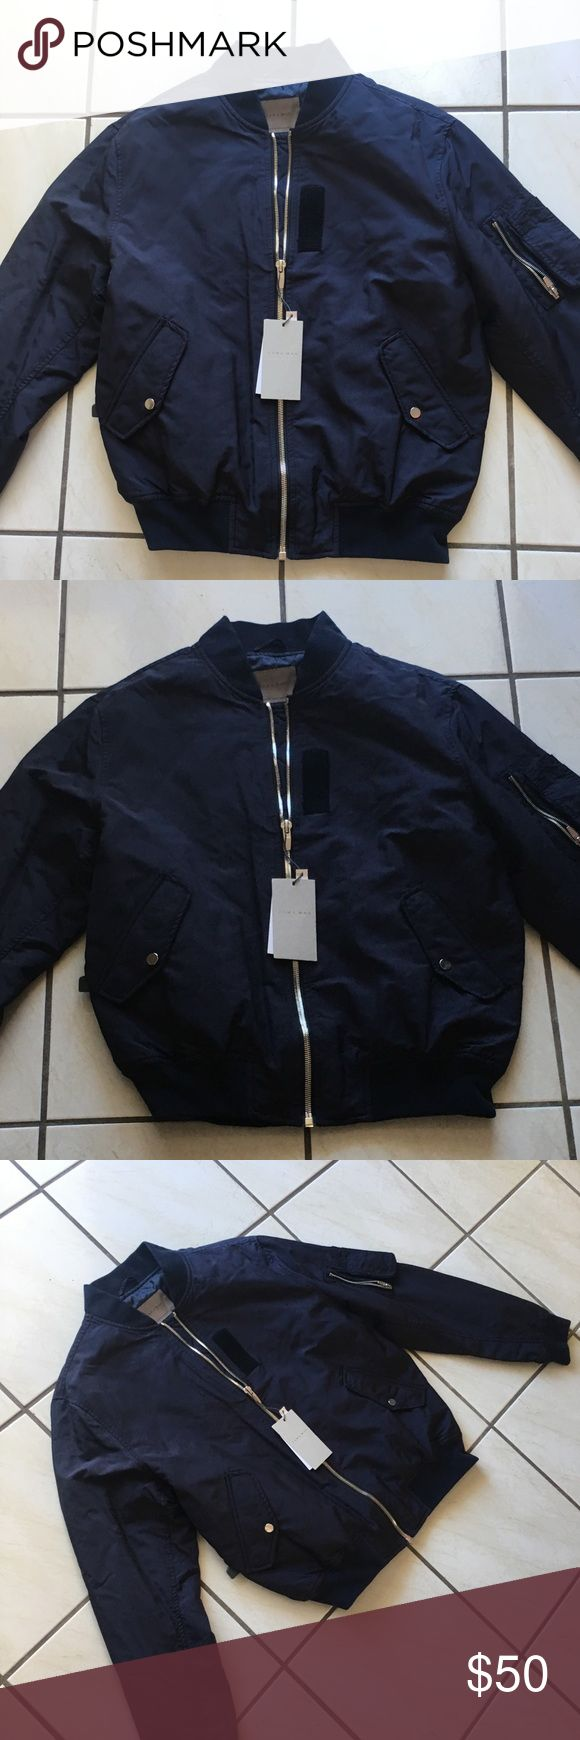 Zara Men's blue Bomber Jacket Brand New with tags mens Zara bomber jacket. The blue jacket is perfect for those chilly or cold days and night out. It has 2 front pockets with button closure and one sleeve zip pocket. The bottom sleeves and waist band are blue and elastic. The zippers are silver color. Don't miss out on this baby. Zara Jackets & Coats Bomber & Varsity